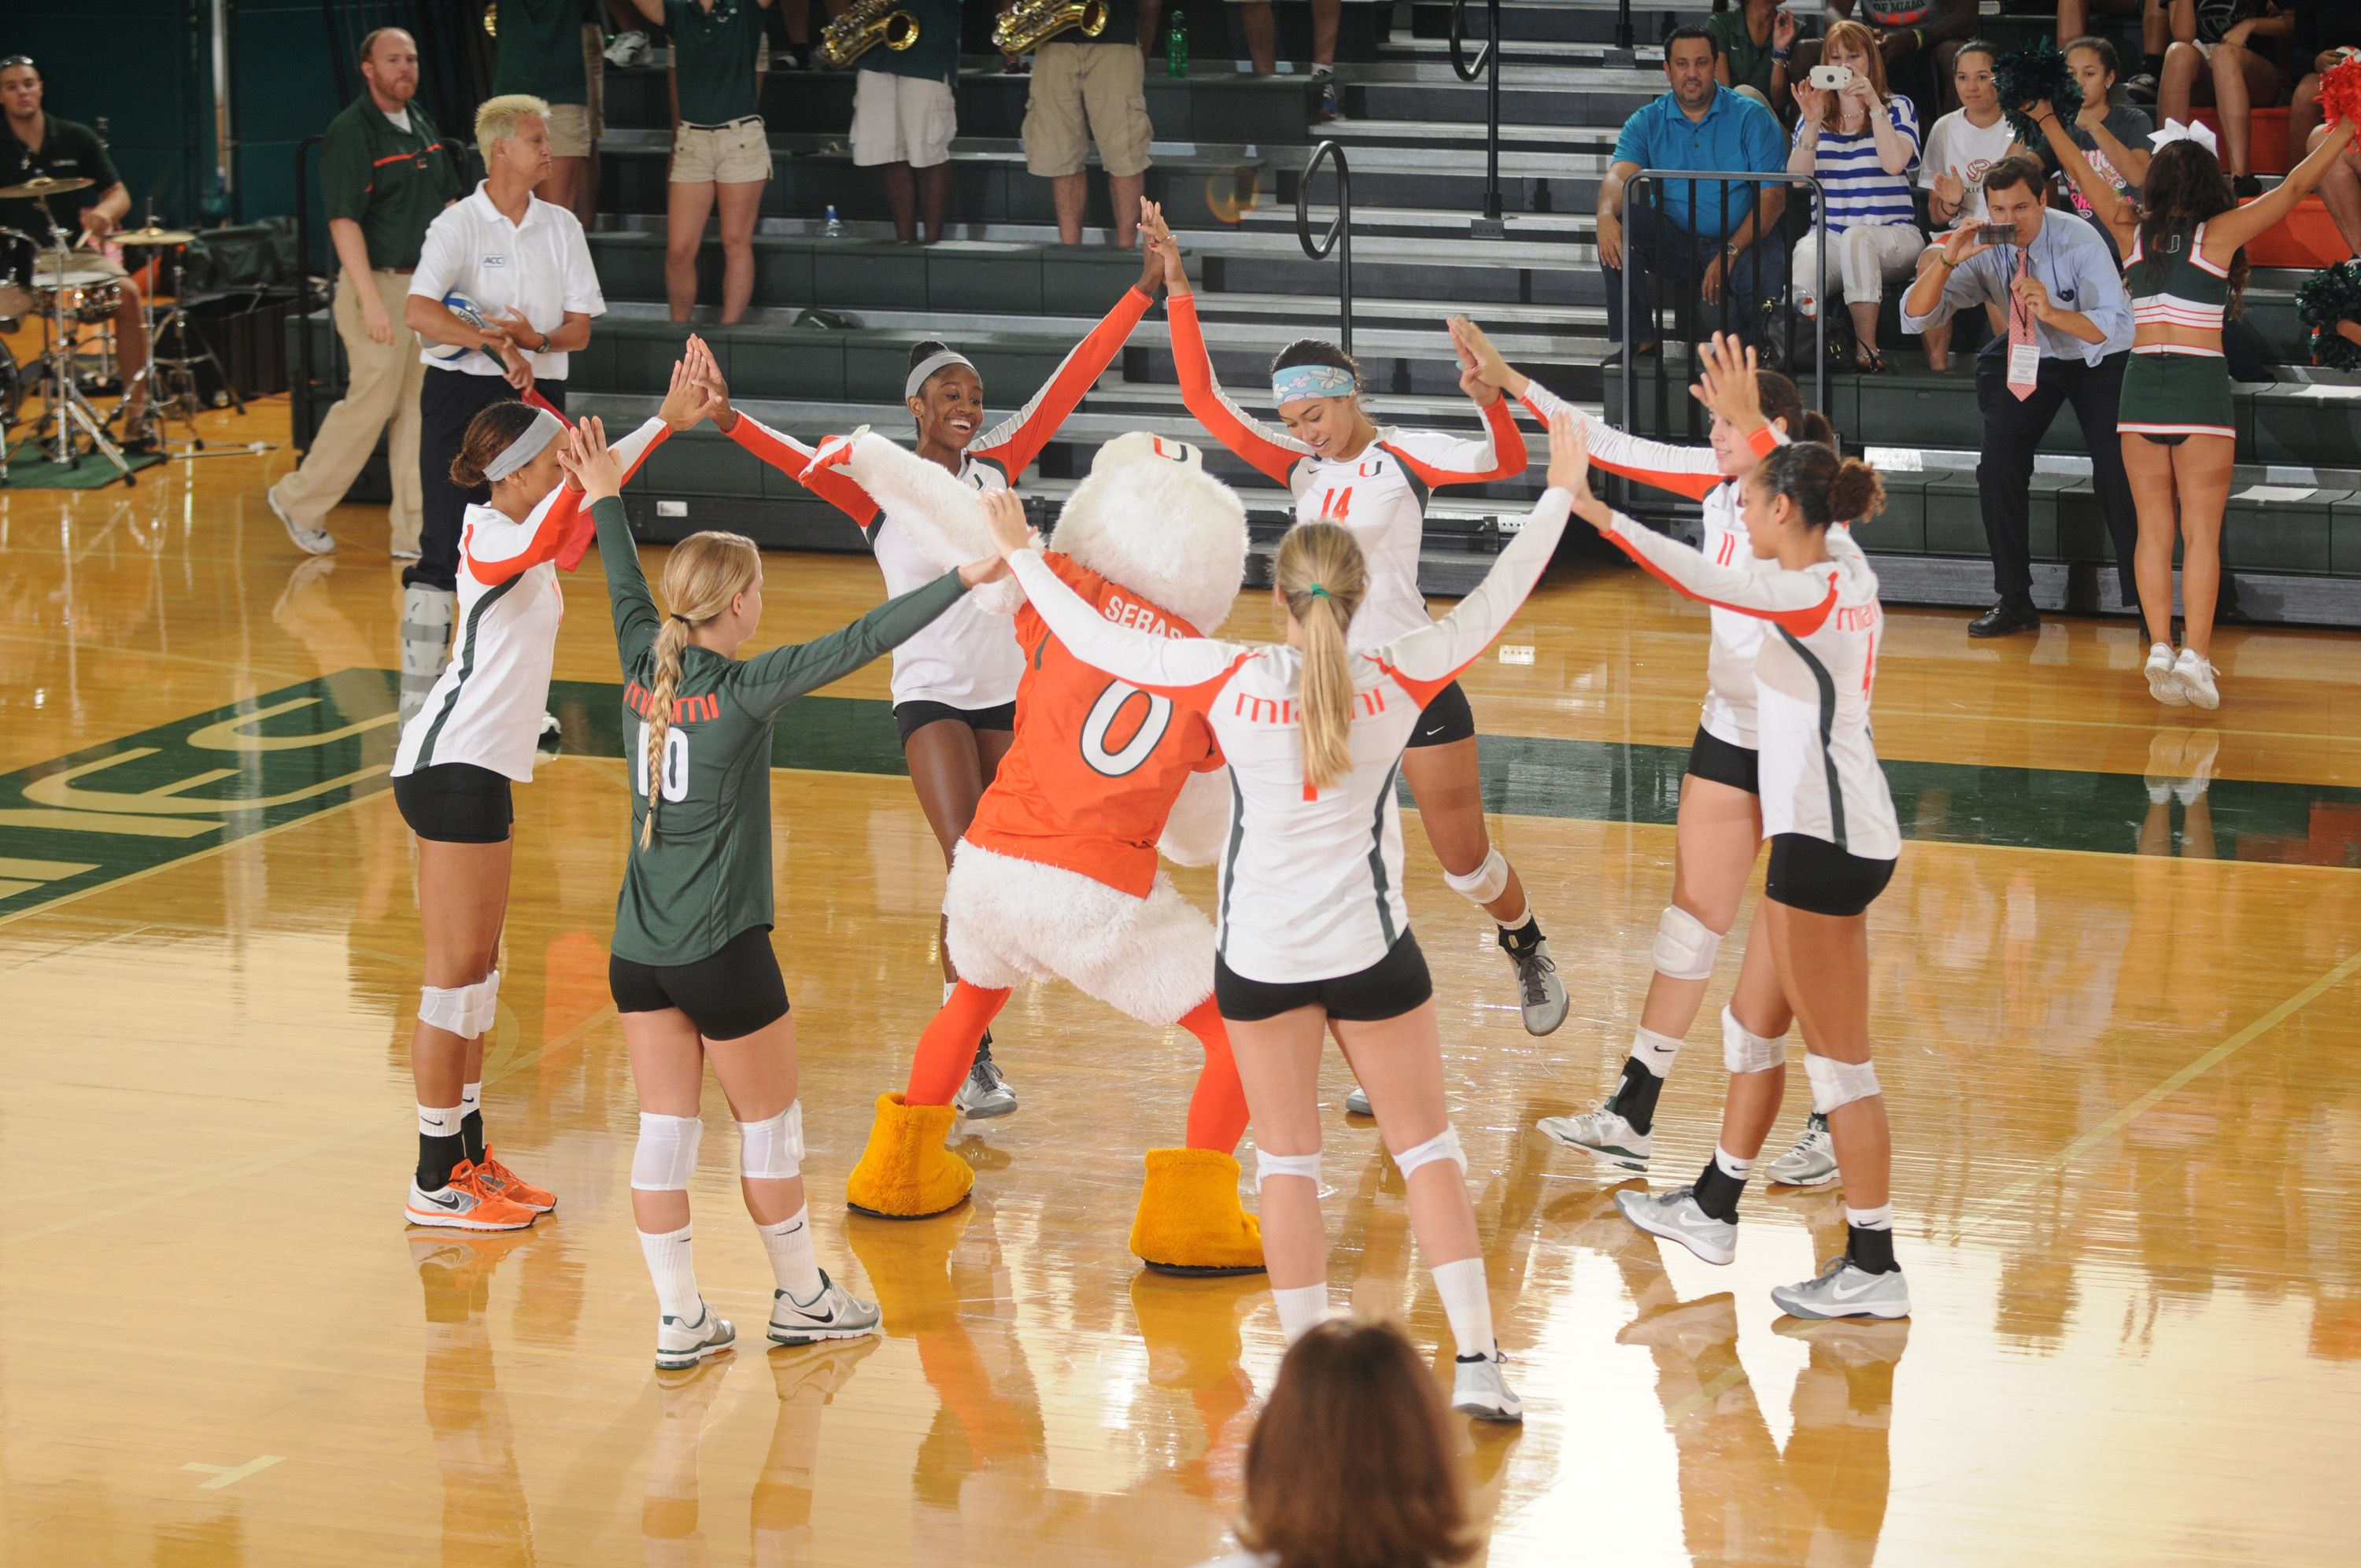 Sebastian At A Canes Volleyball Game With Images University Of Miami Hurricanes Volleyball Games University Of Miami